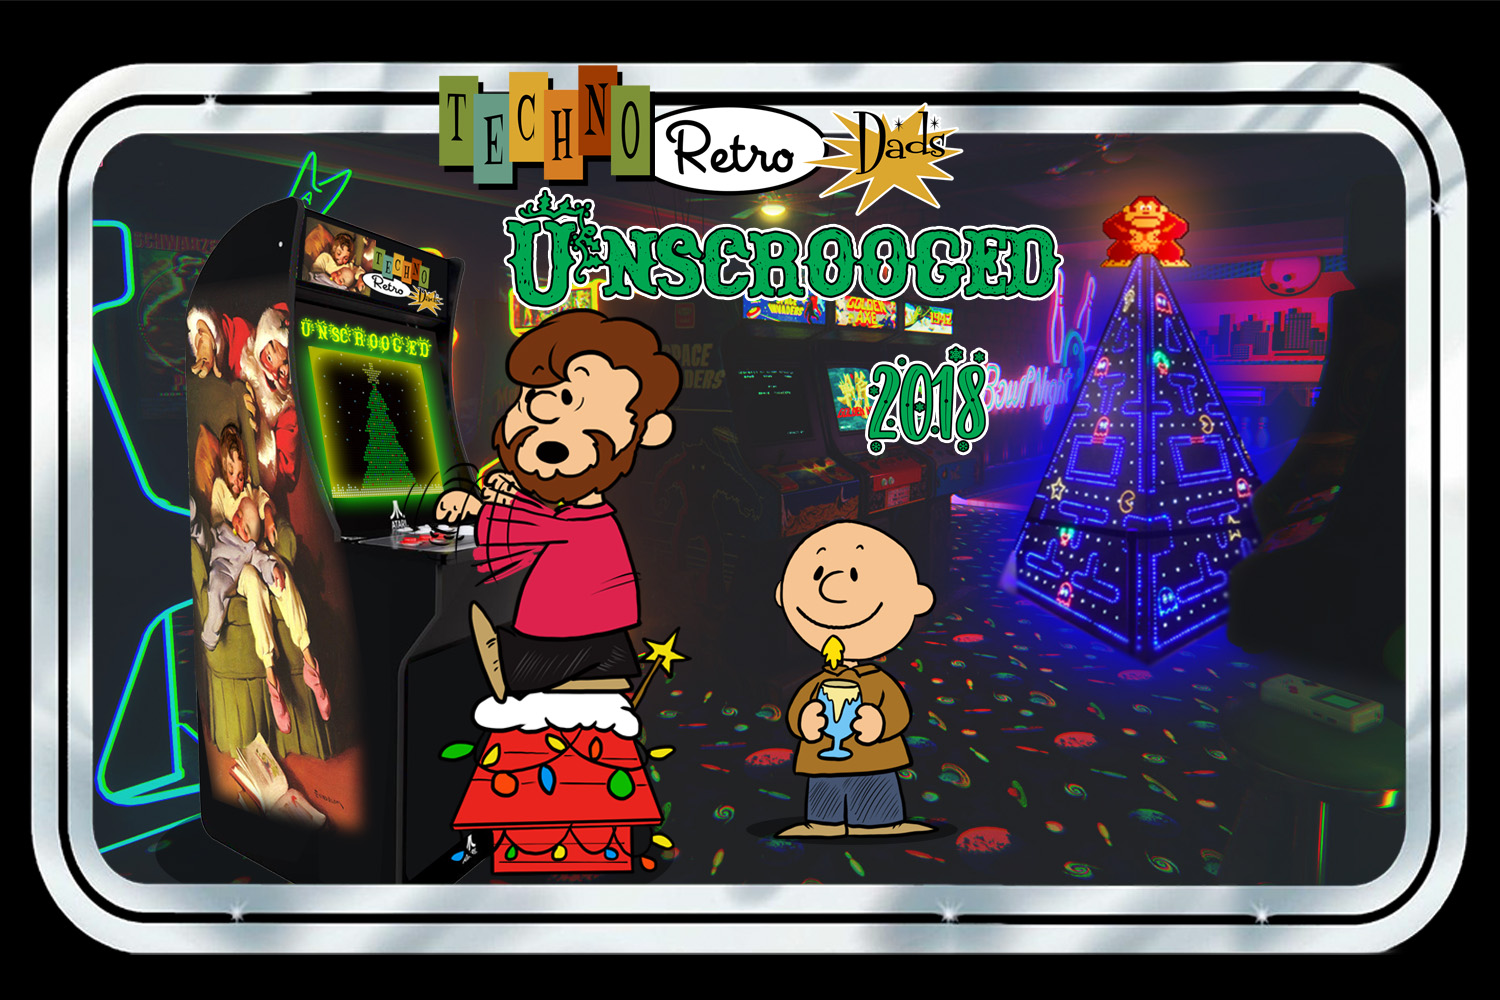 TechnoRetro Dads: UnScrooged 2018